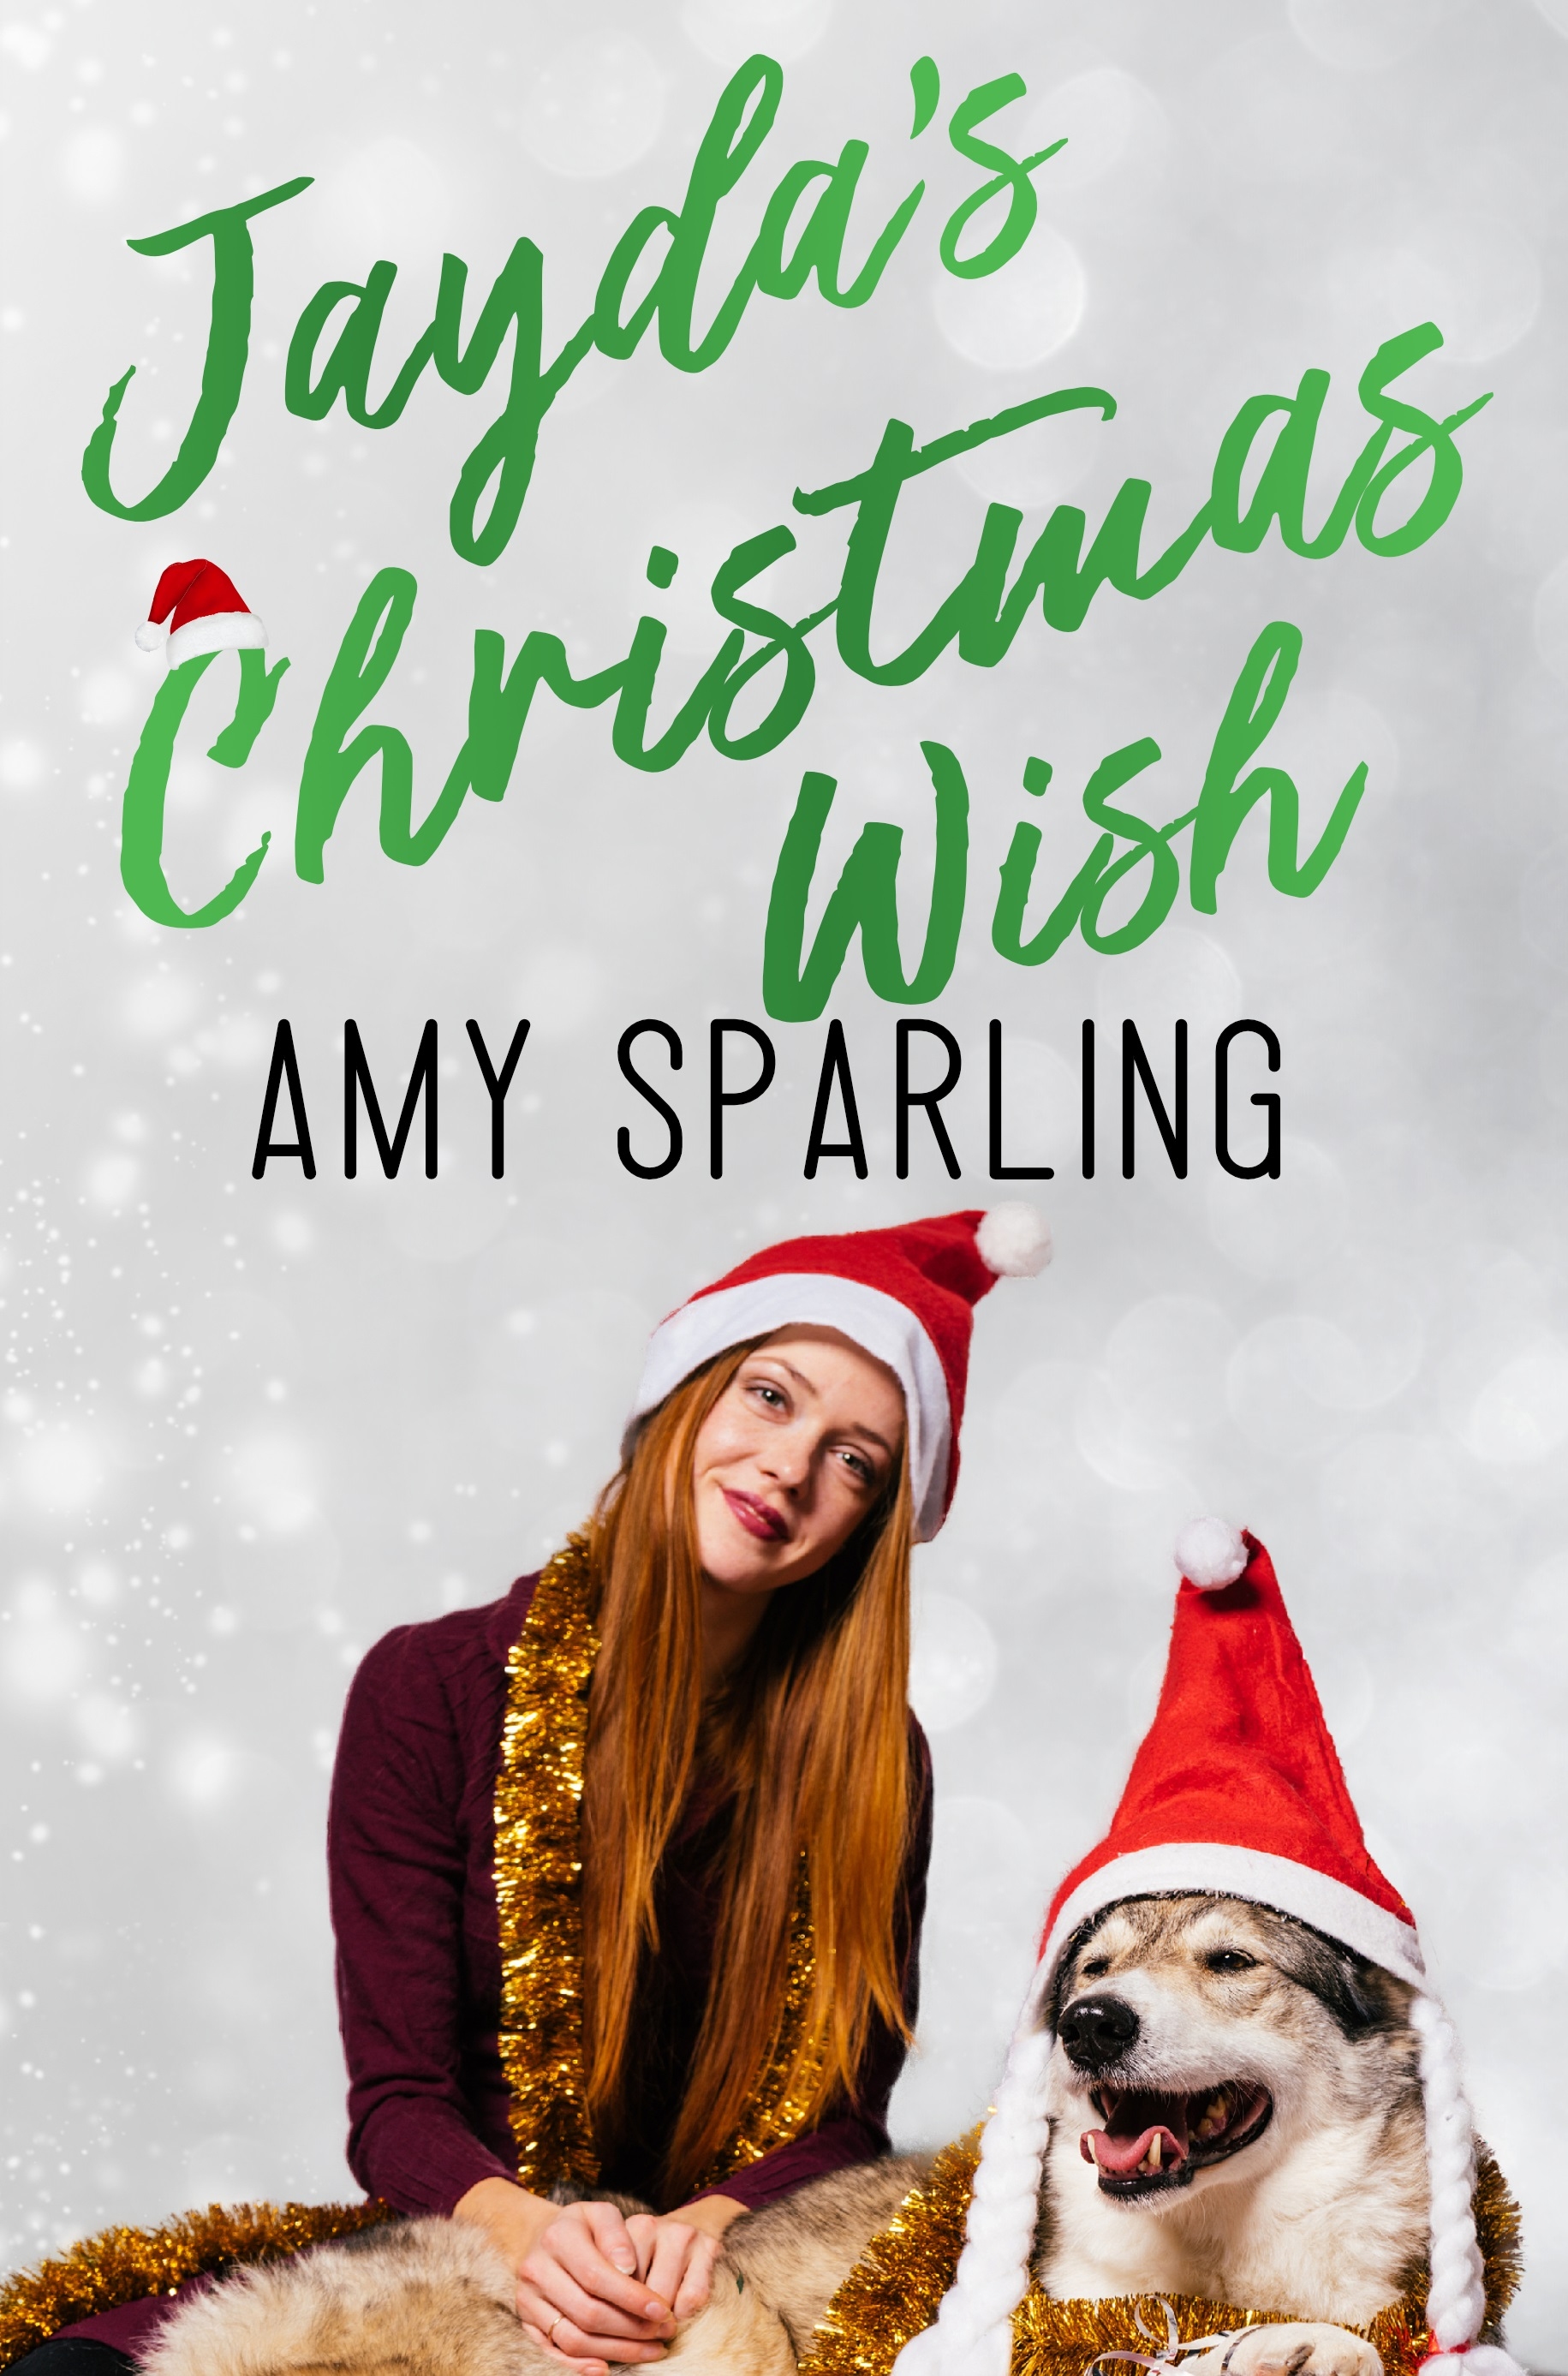 Jaydas Christmas Wish_ebook